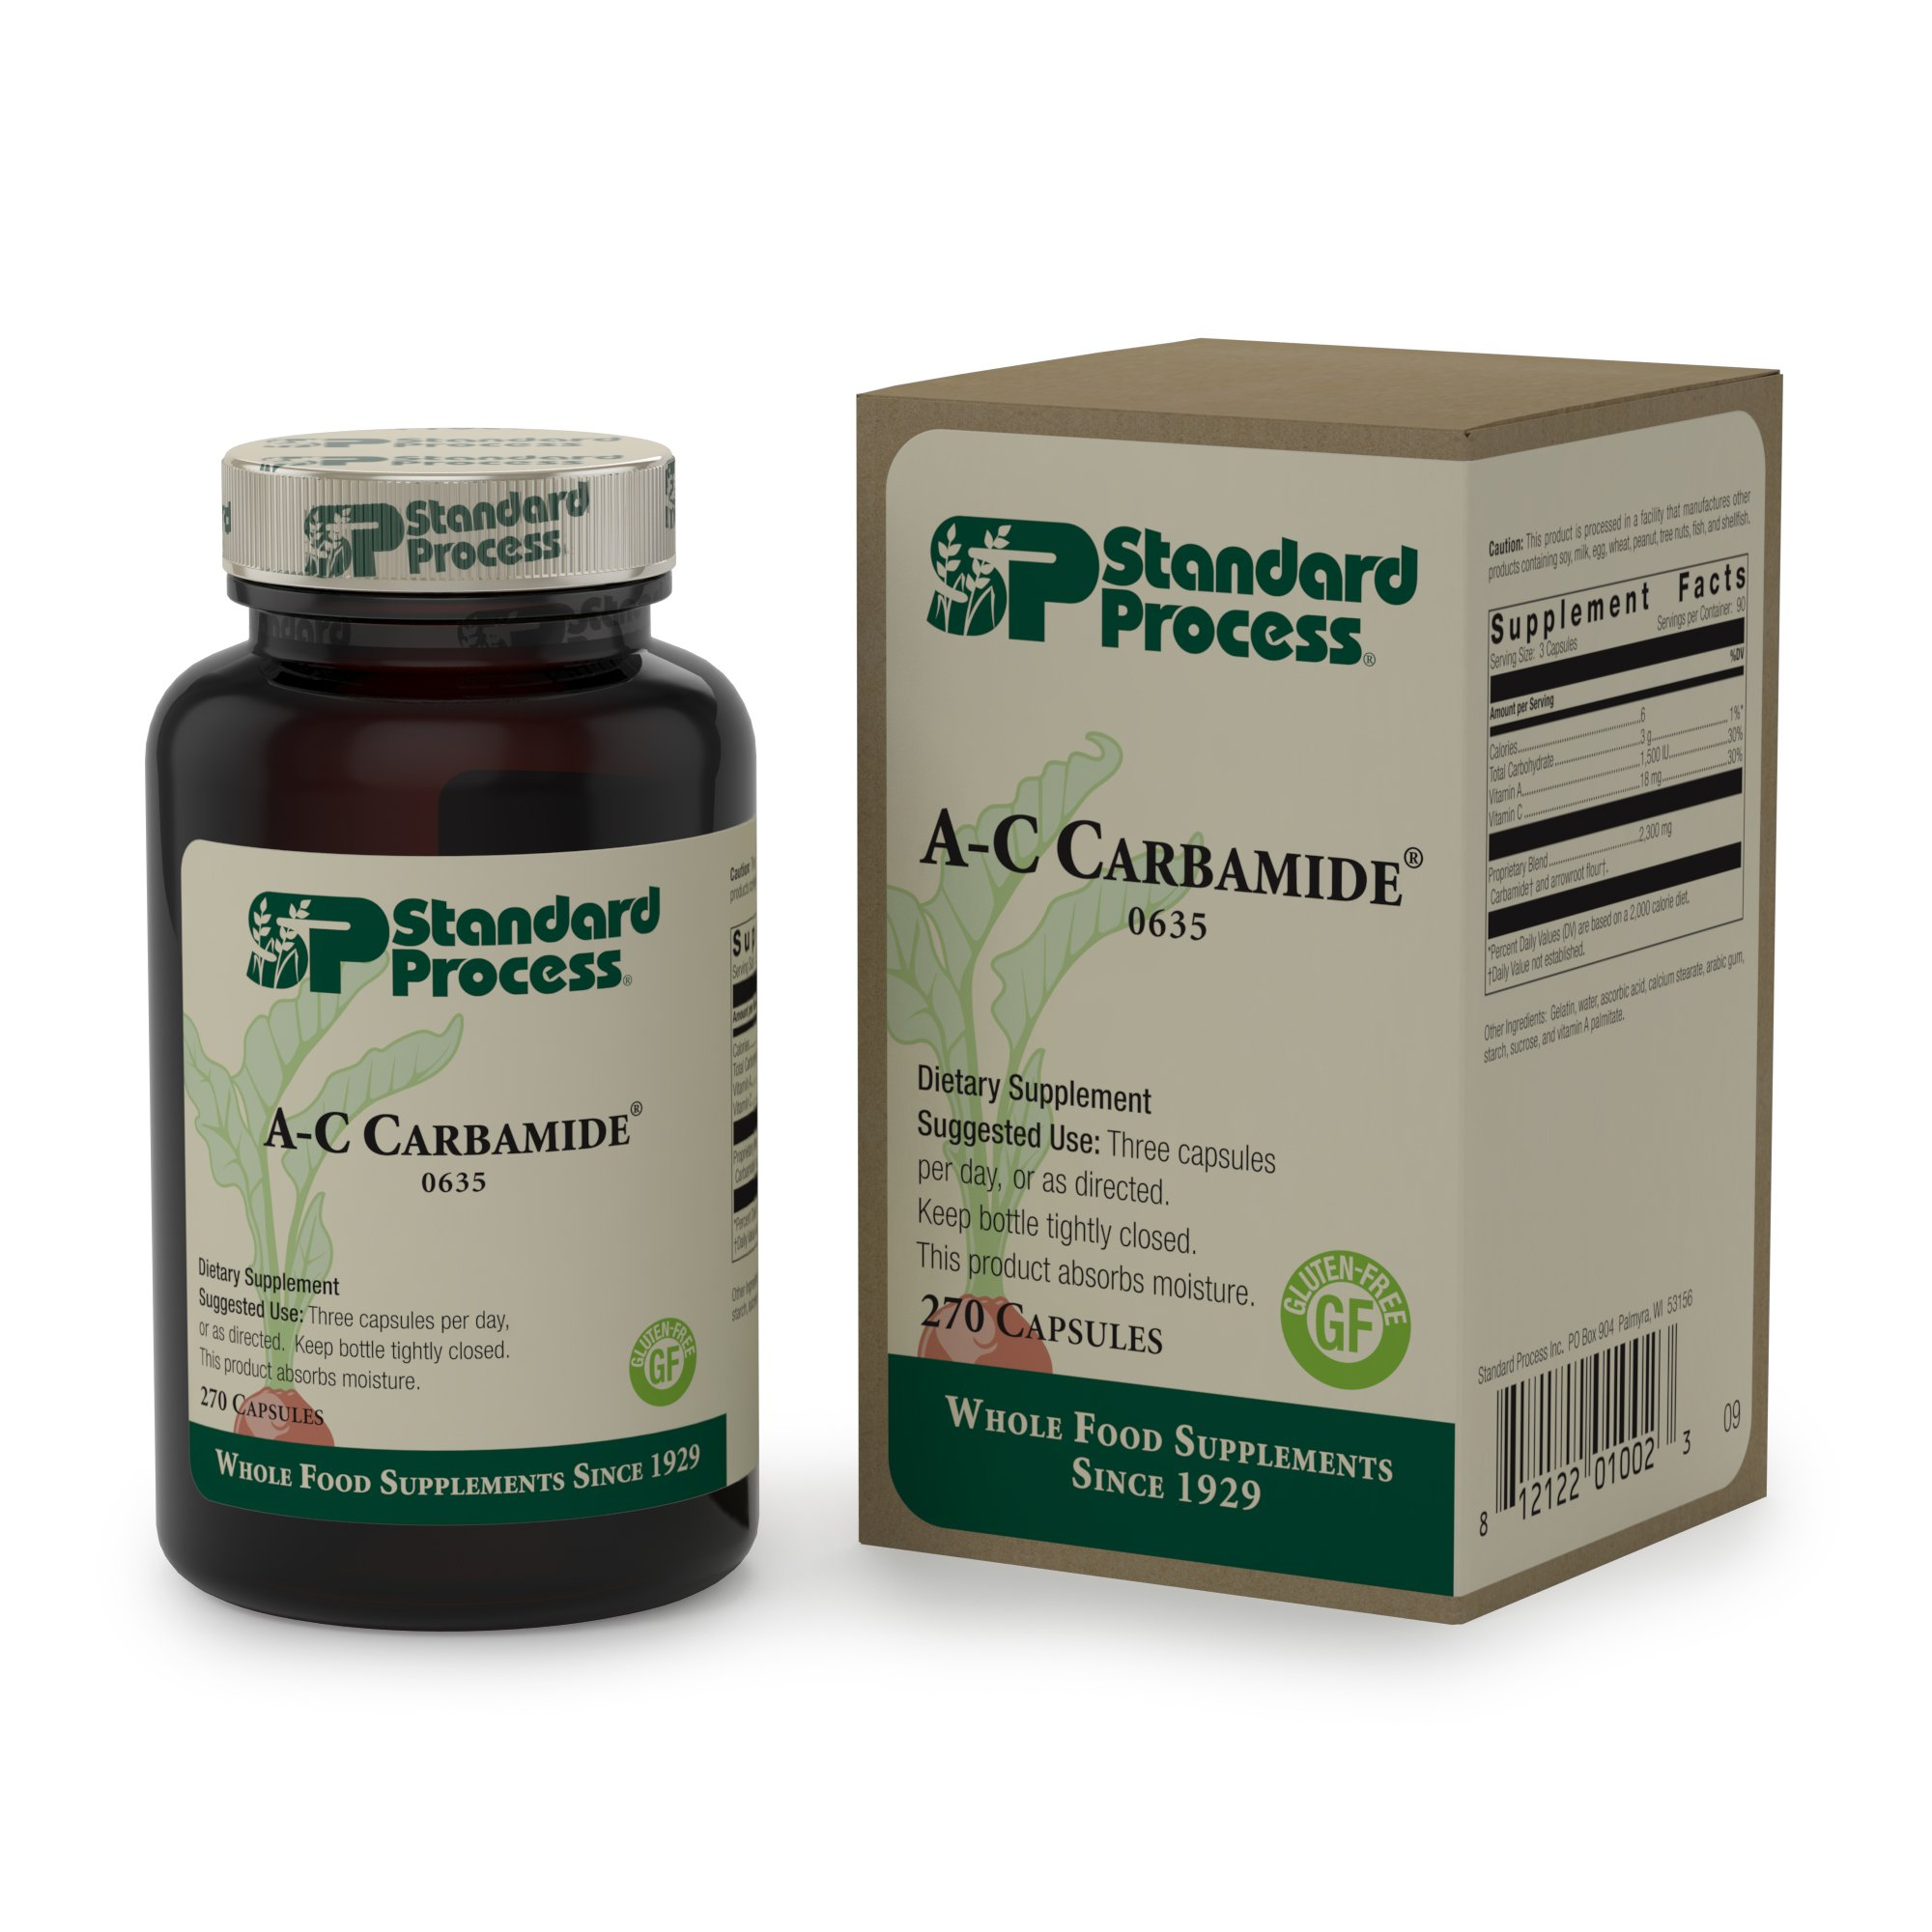 Standard Process - A-C Carbamide - 1500 IU Vitamin A, 18mg Vitamin C, Gluten Free Supplement, Supports Healthy Urinary System, Fluid Transfer and Levels - 270 Capsules